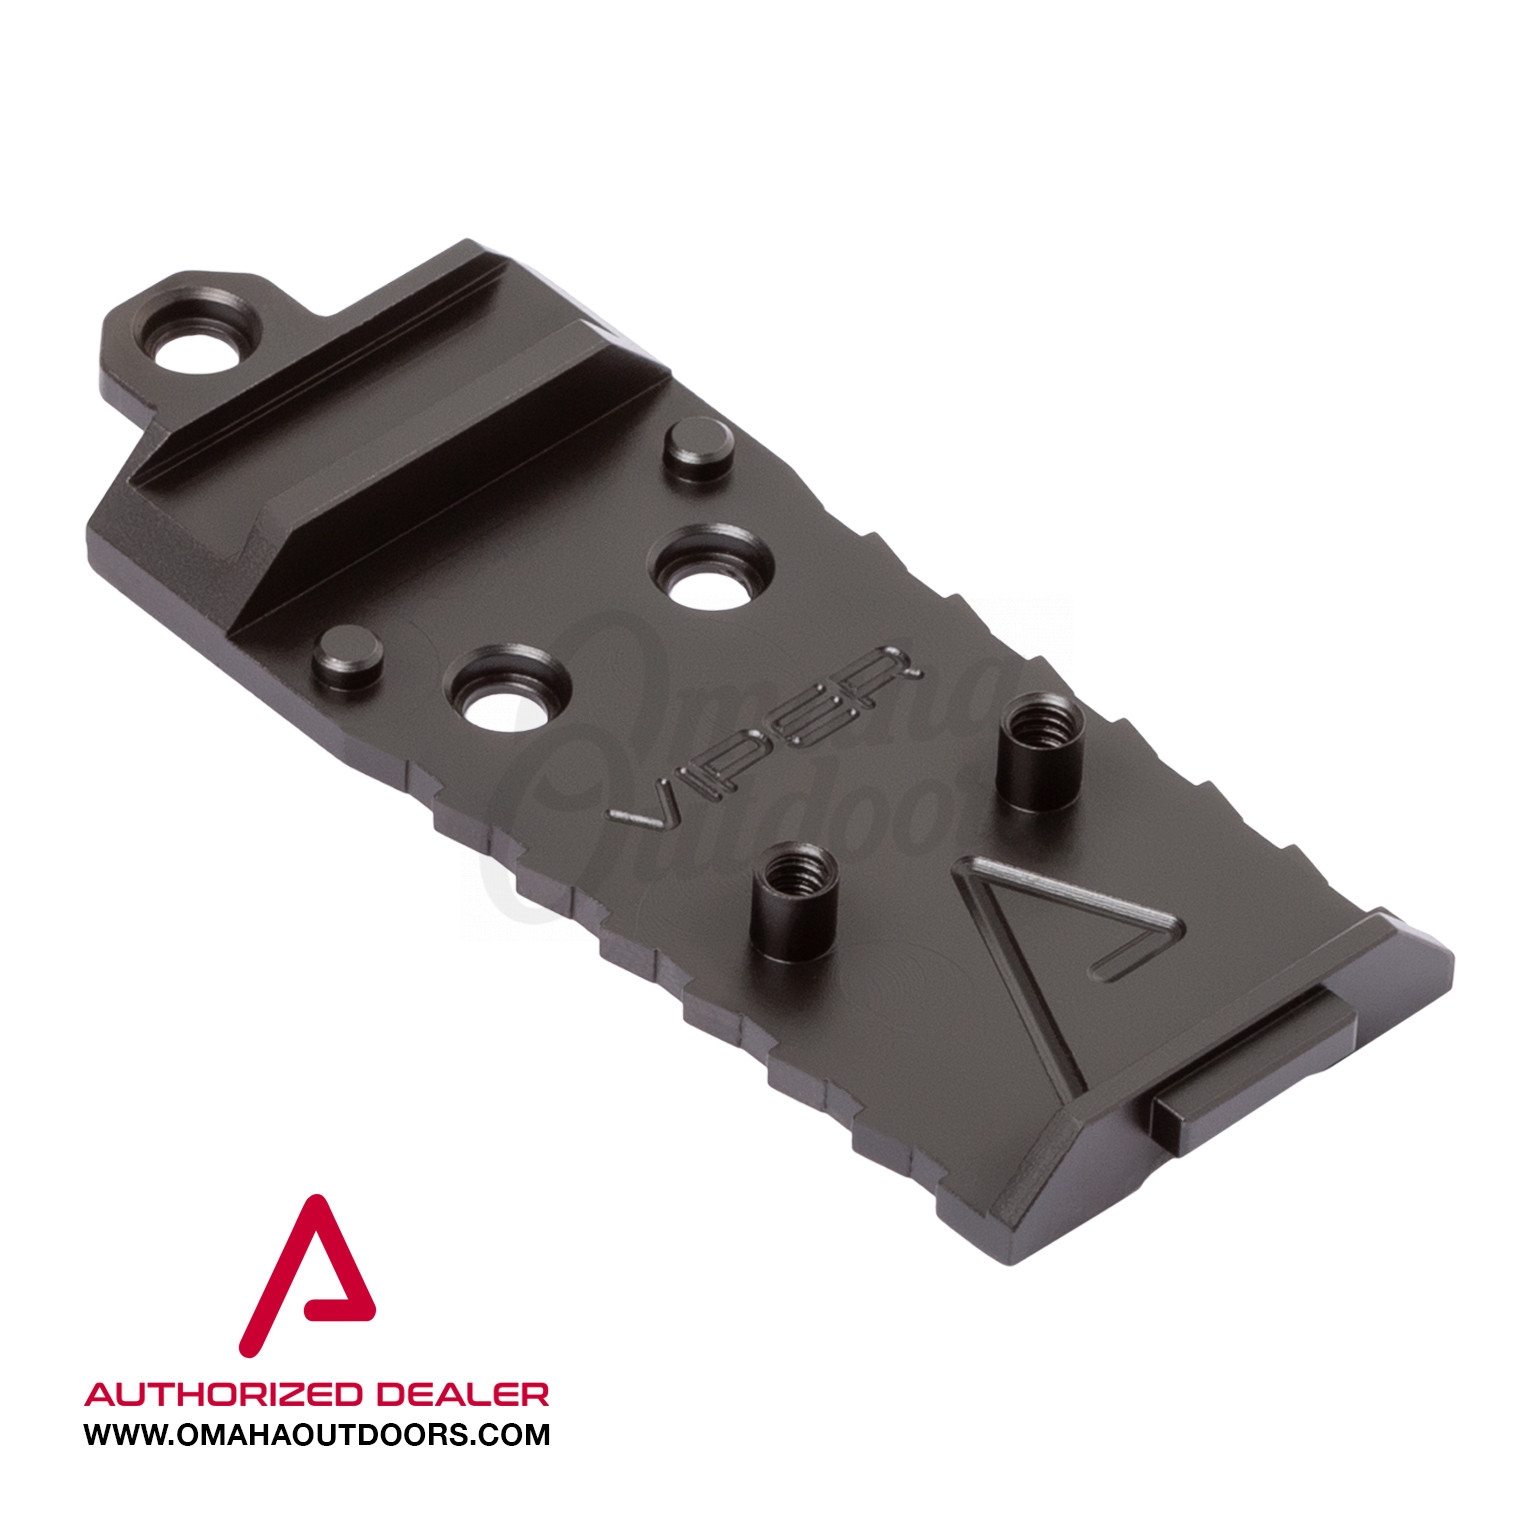 Agency Arms AOS Adapter Plate Glock